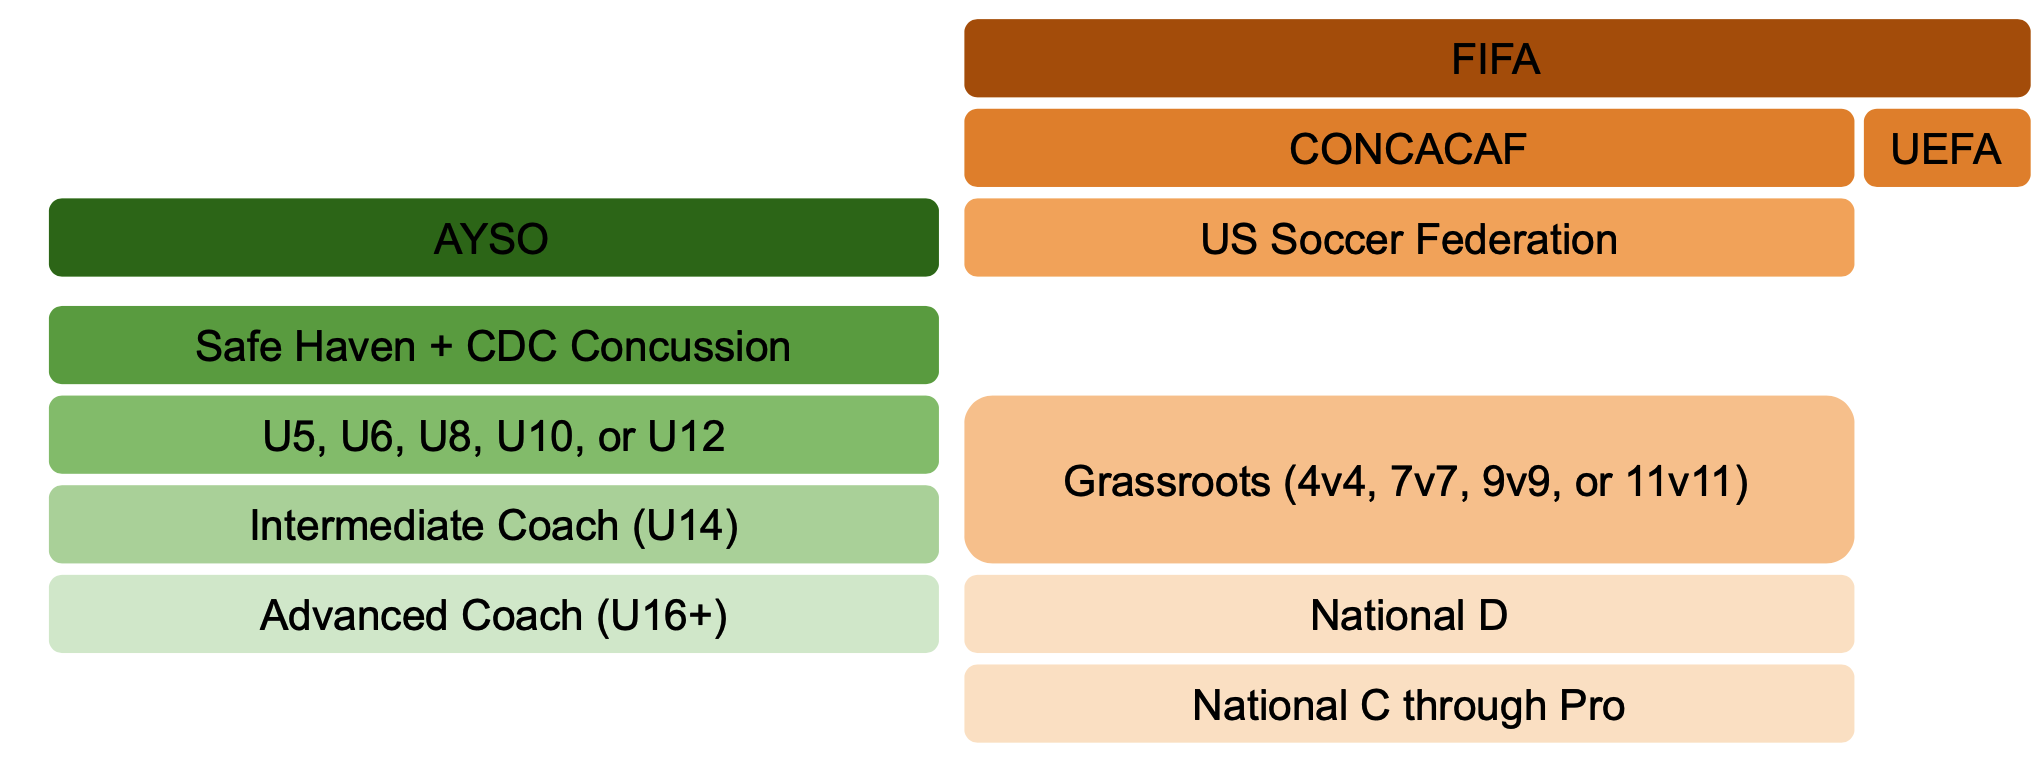 coaching soccer certification ayso federation cross align tiers